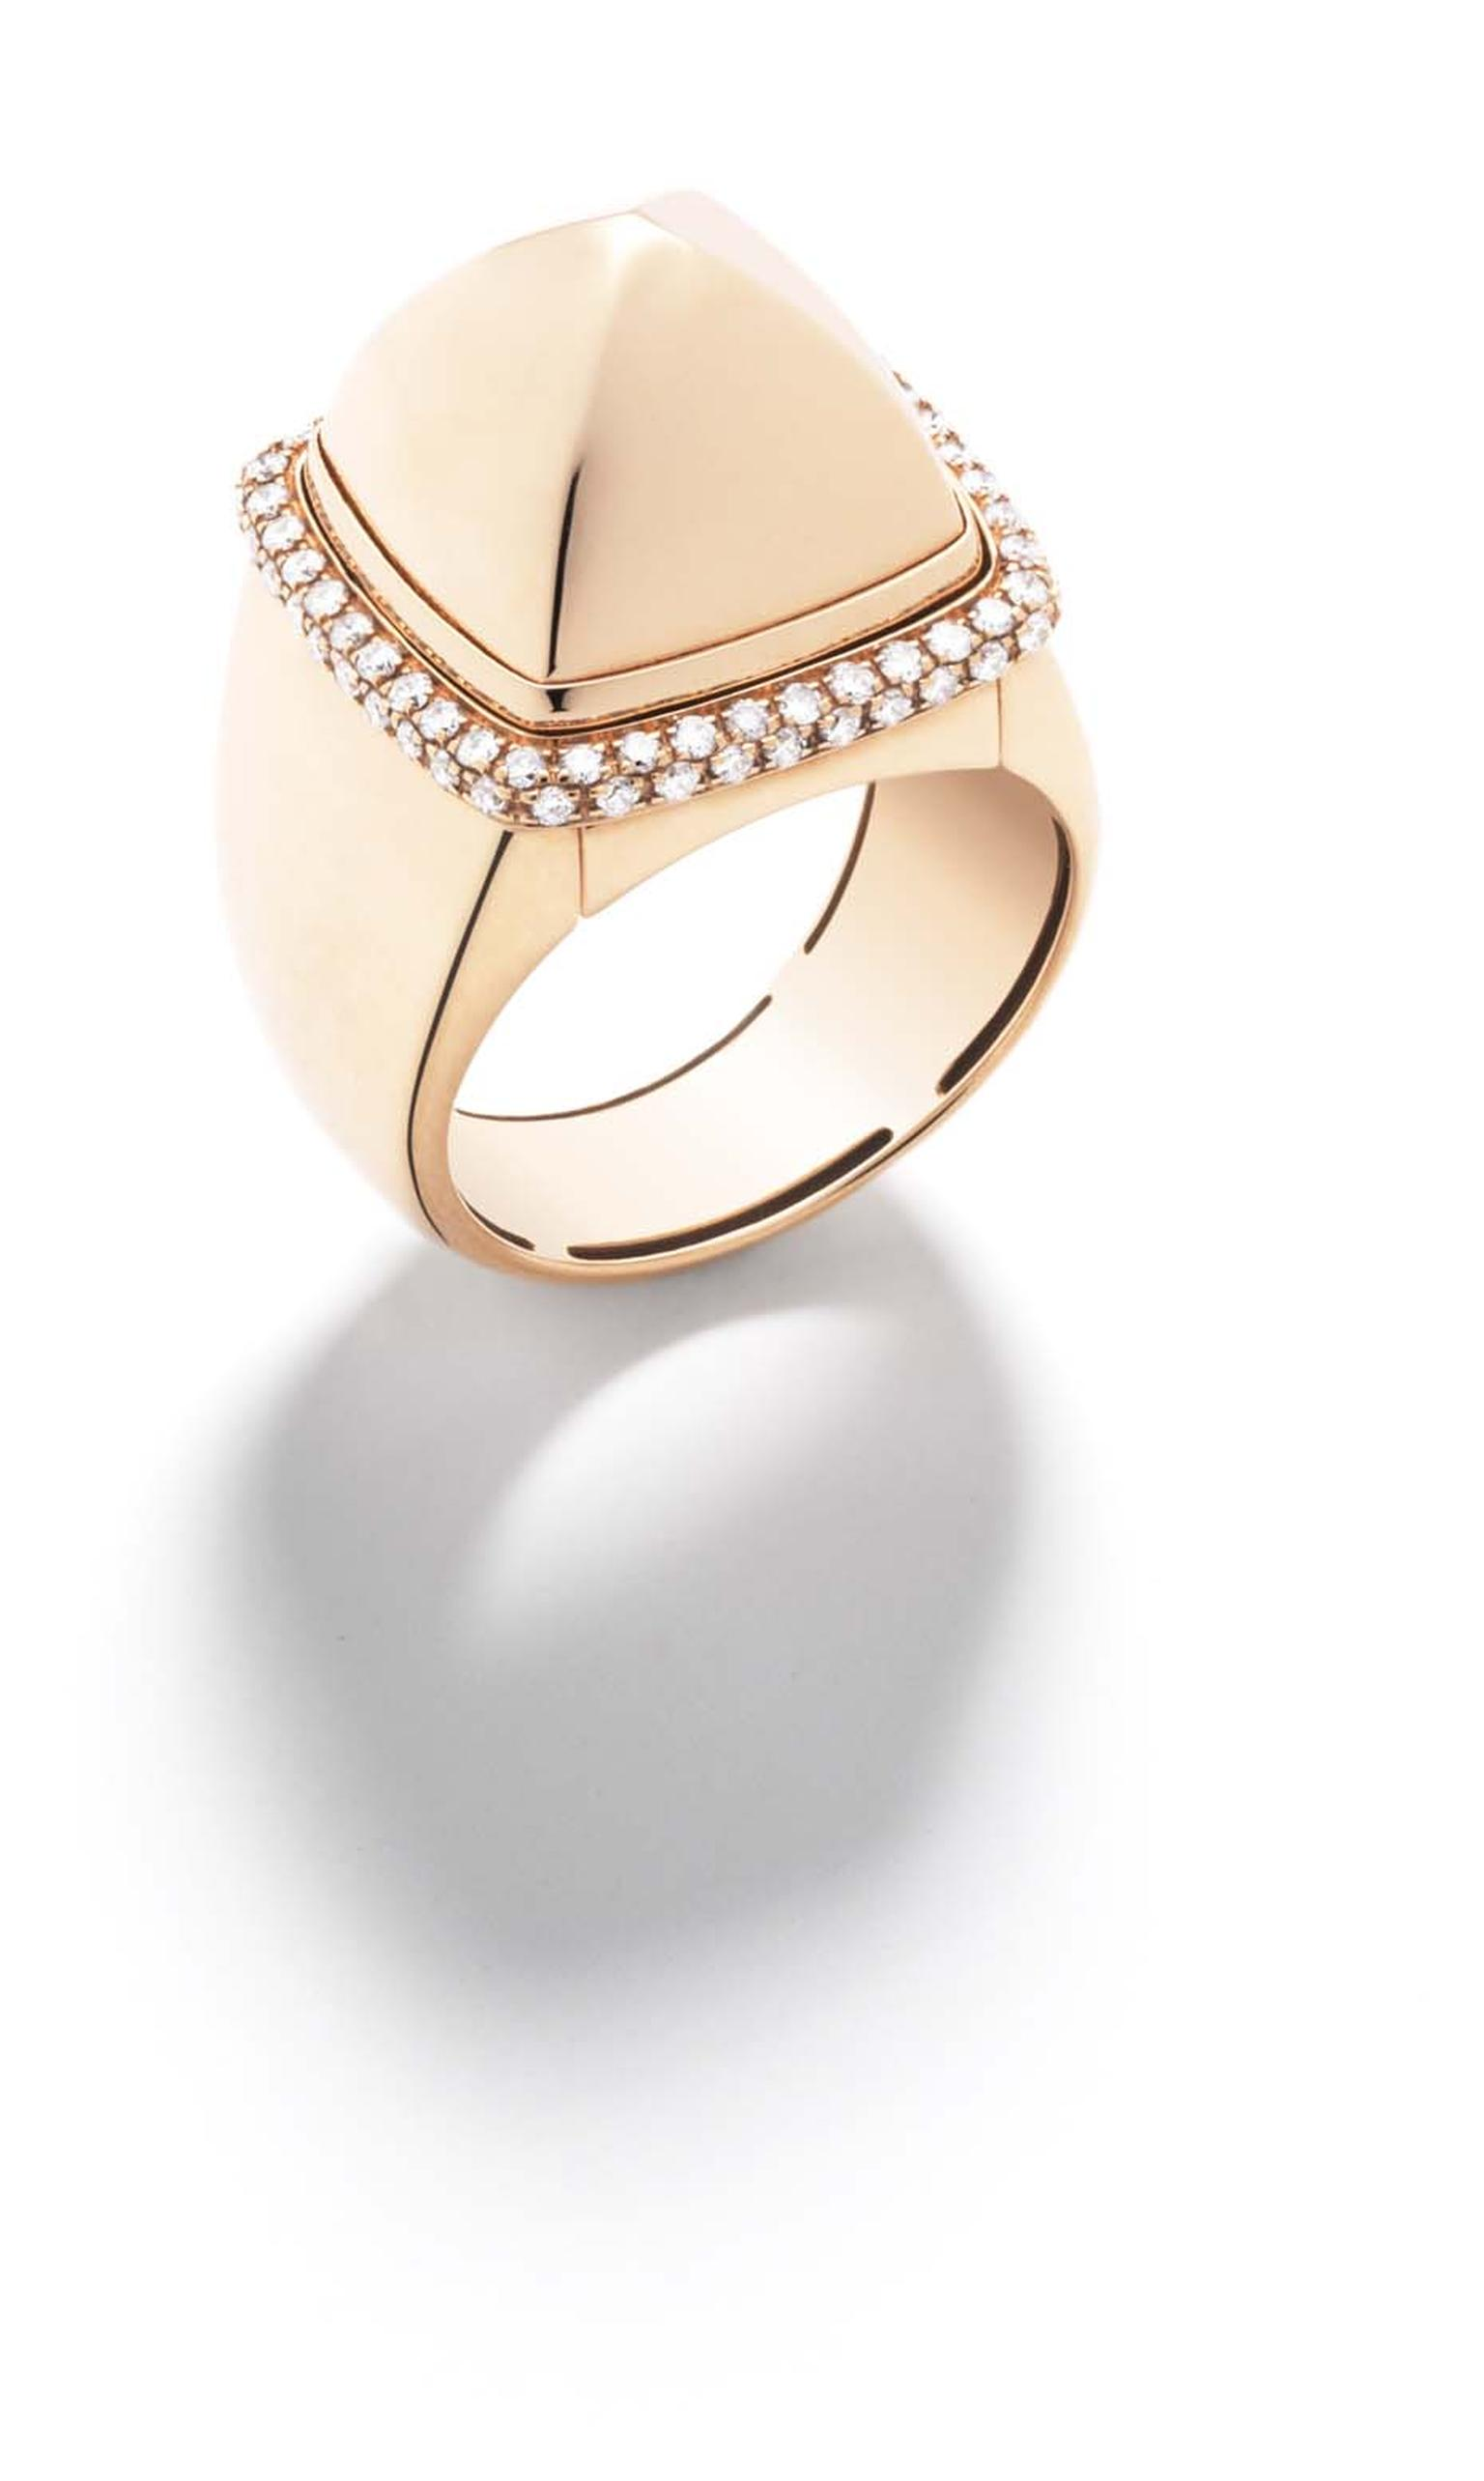 FRED Pain de Sucre collection ring in rose gold and diamonds with an interchangeable cabochon in polished rose gold.